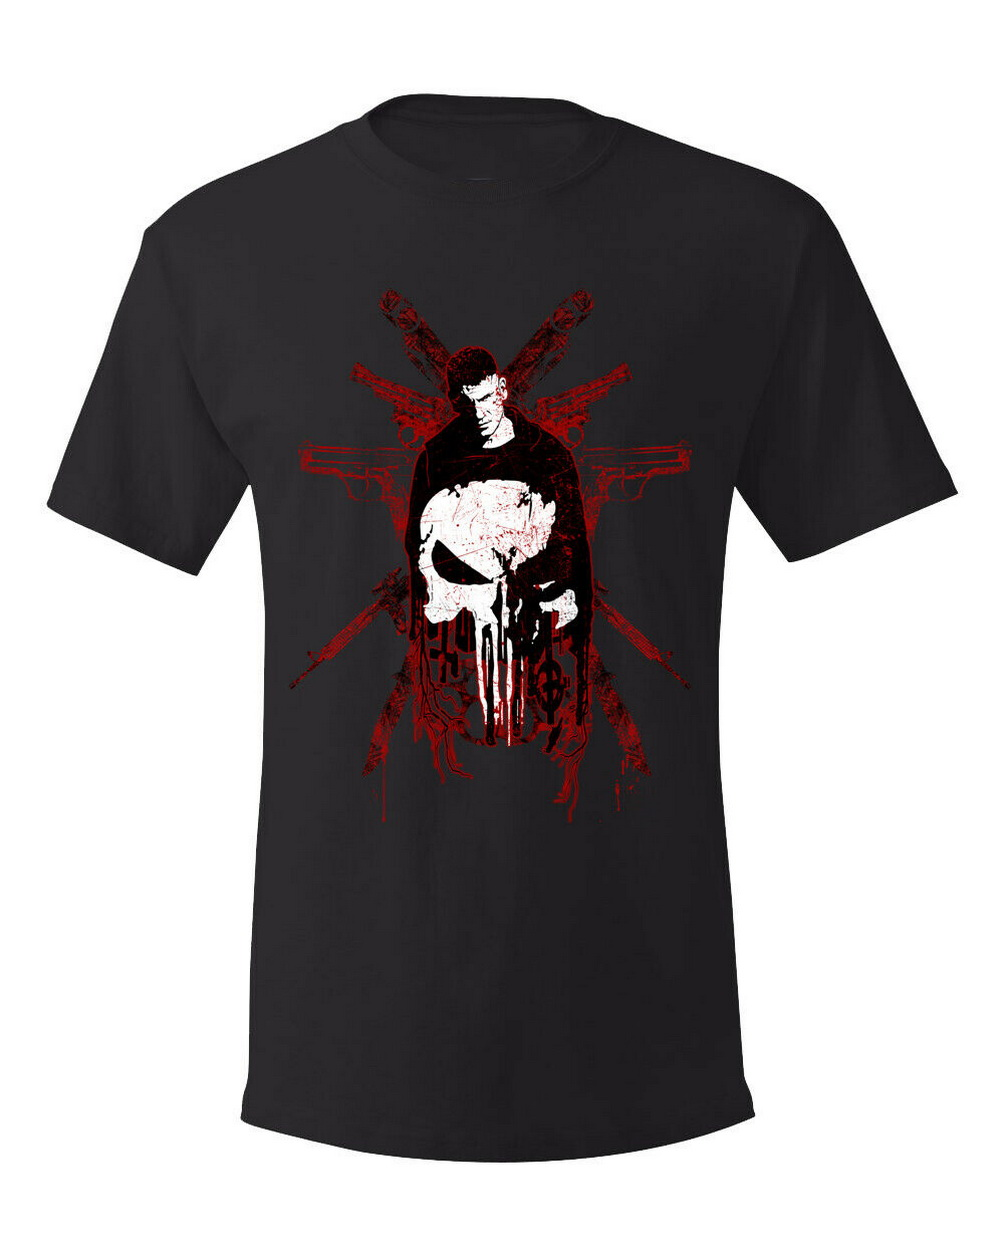 The Punisher, Comic, Series, Movies, Artistic Design, Graphic Tee, Men T-Shirt 6 Streetwear Tee Shirt image